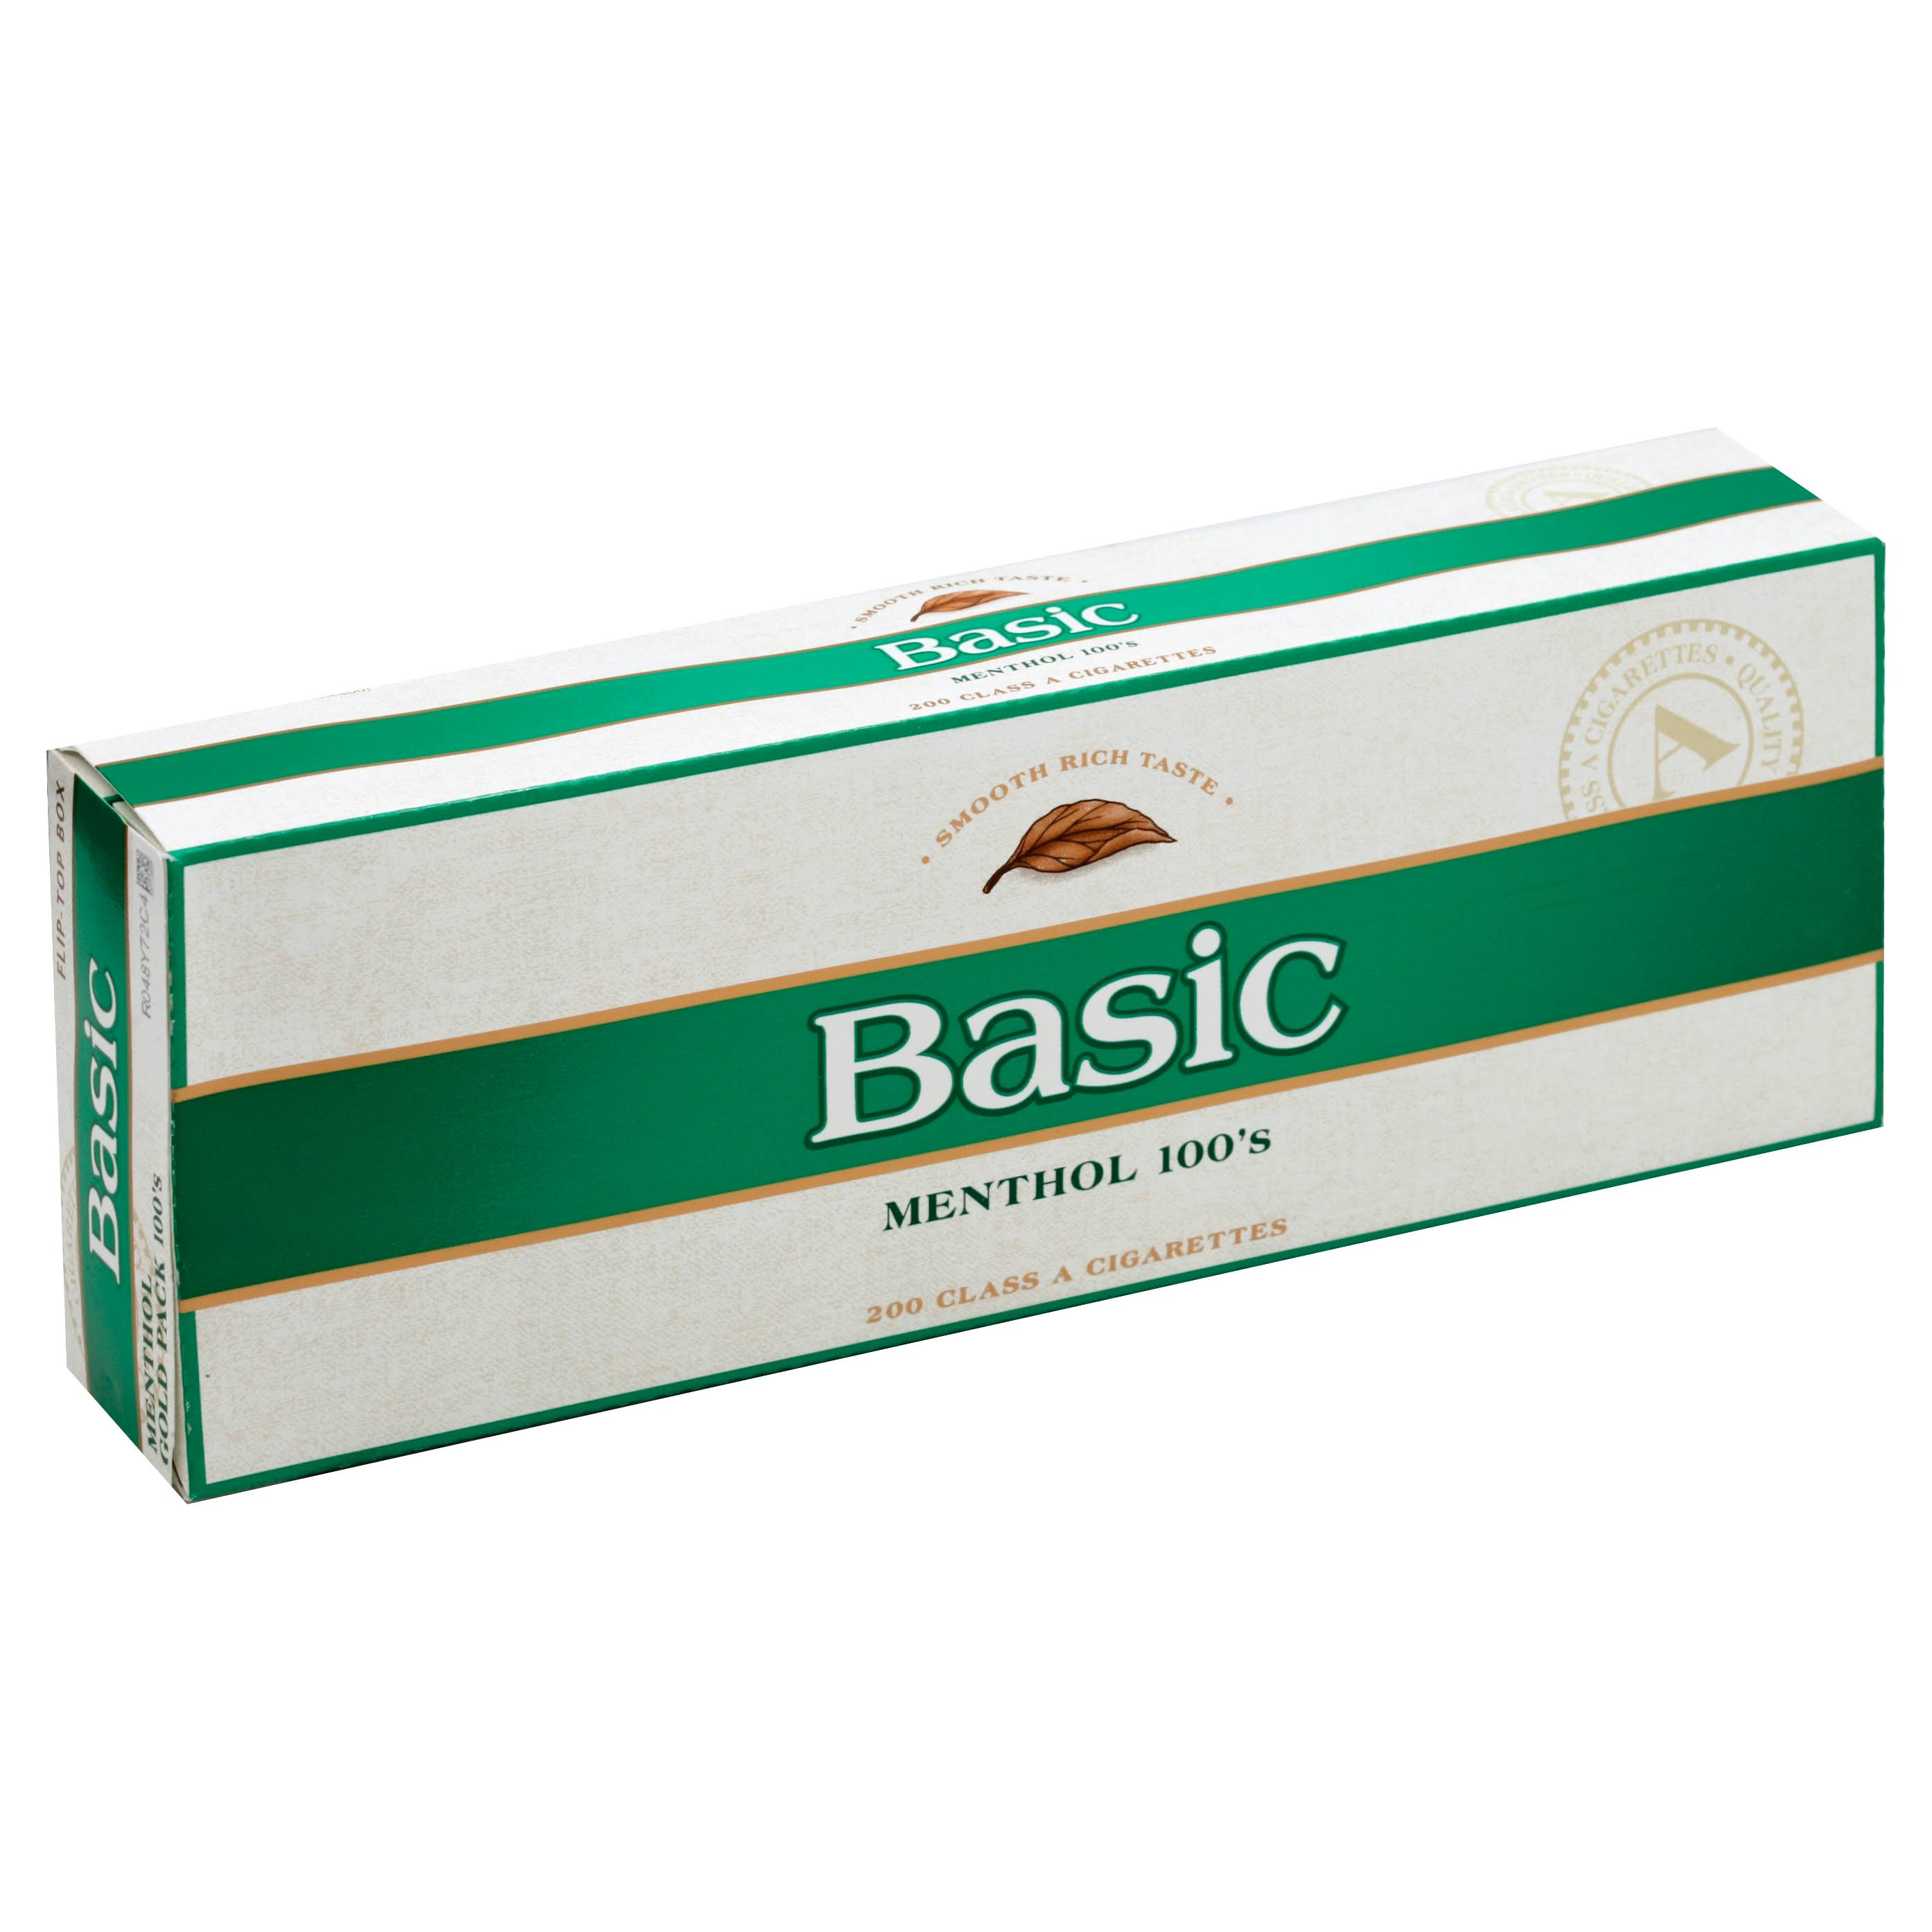 Basic Cigarettes, Menthol Gold Pack 100's, Flip-Top Box - 200 cigarettes